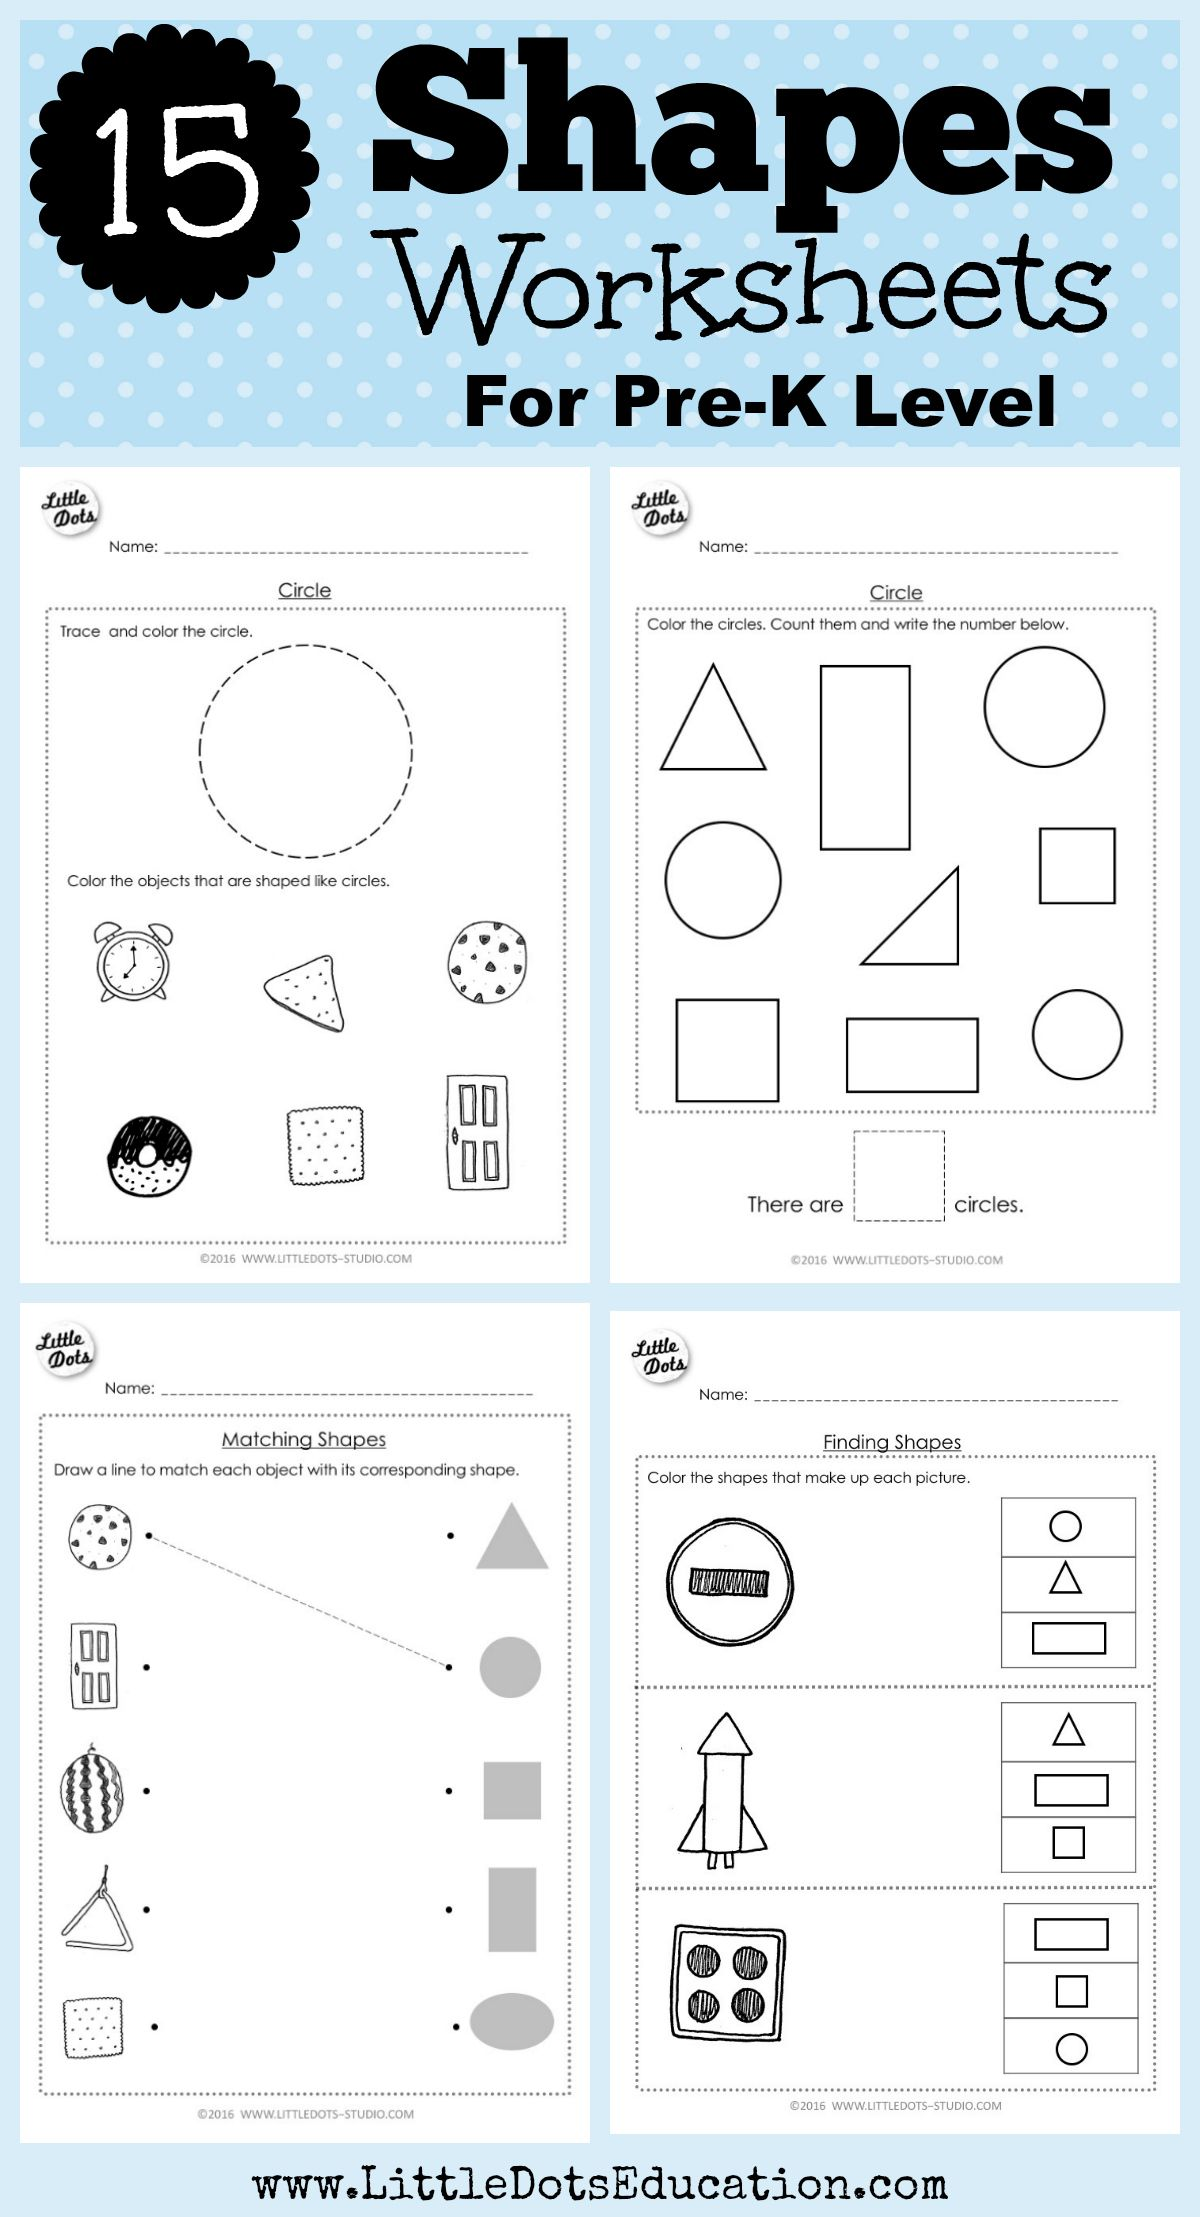 Download shapes worksheets for pre-k or preschool class on circle, square,  triangle